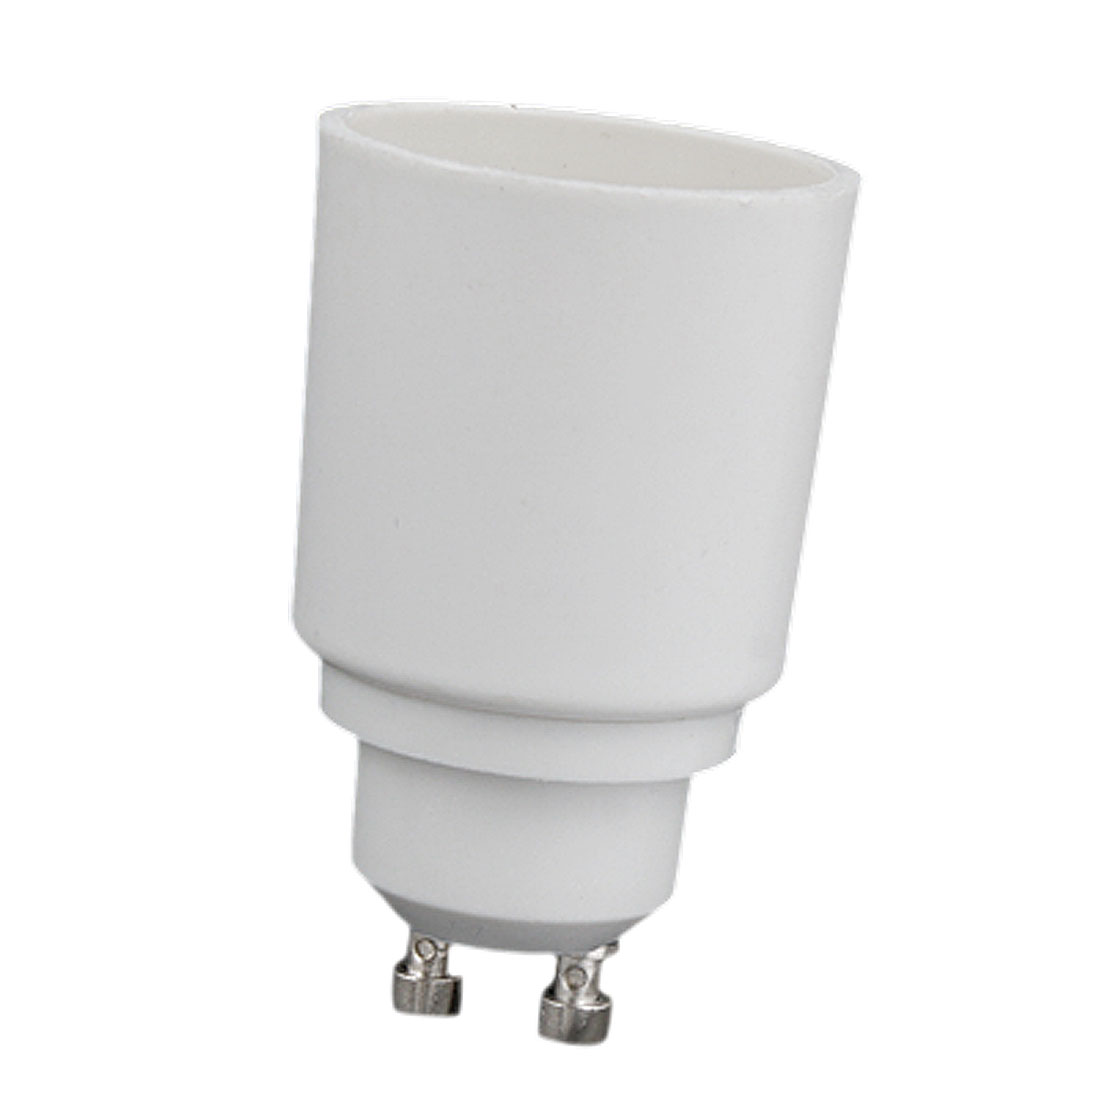 E27 to GU10 White Light Lamp Bulb Socket Adapter